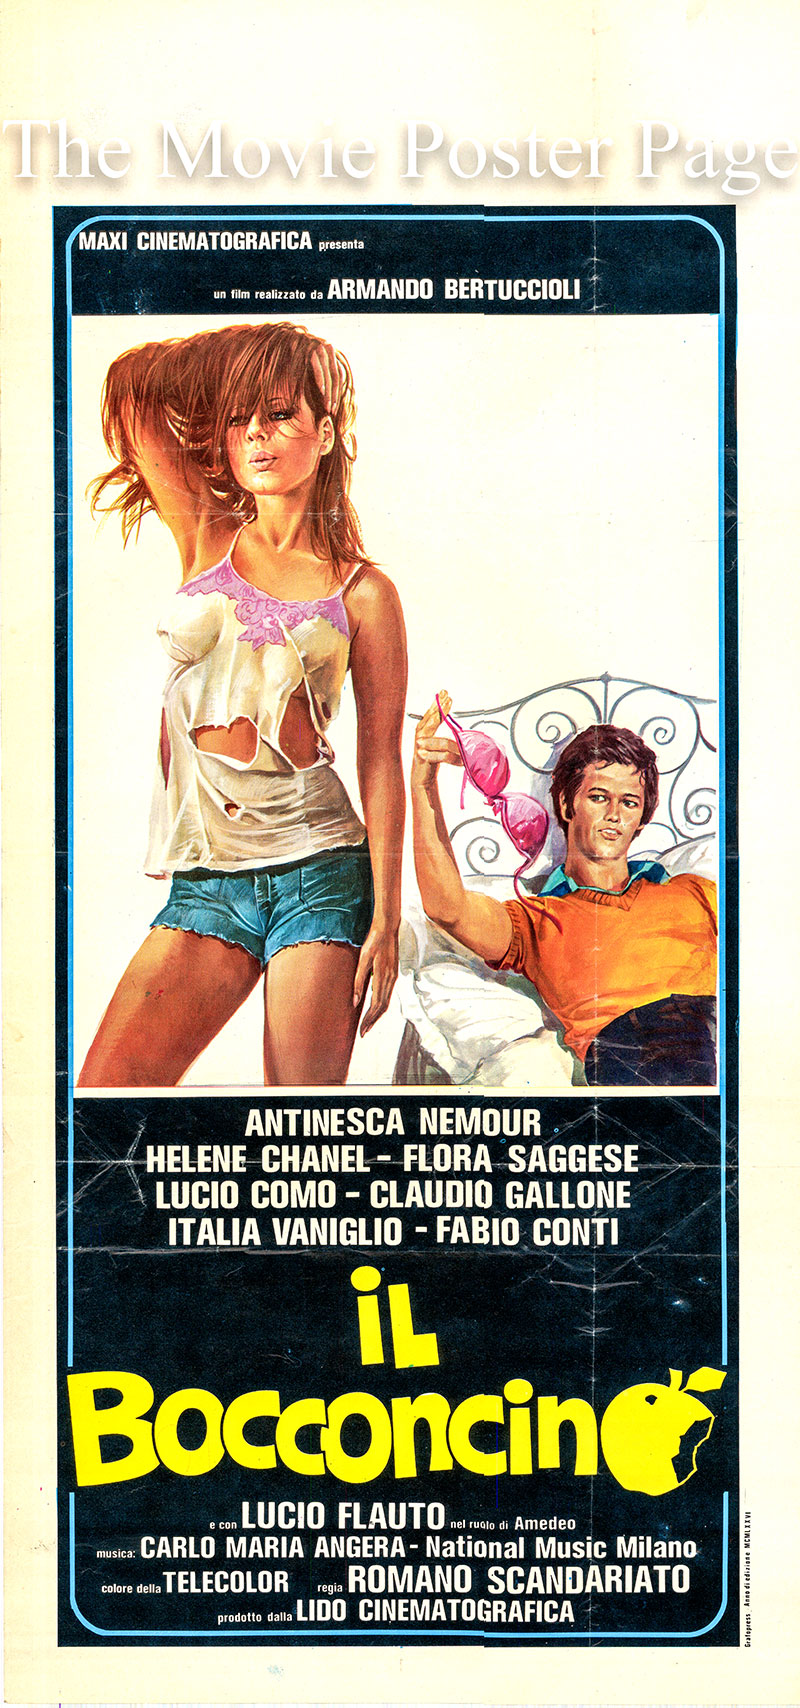 Pictured is an Italian locandina poster for the 1976 film The Titbit starring Claudio Gallone as Gigi.